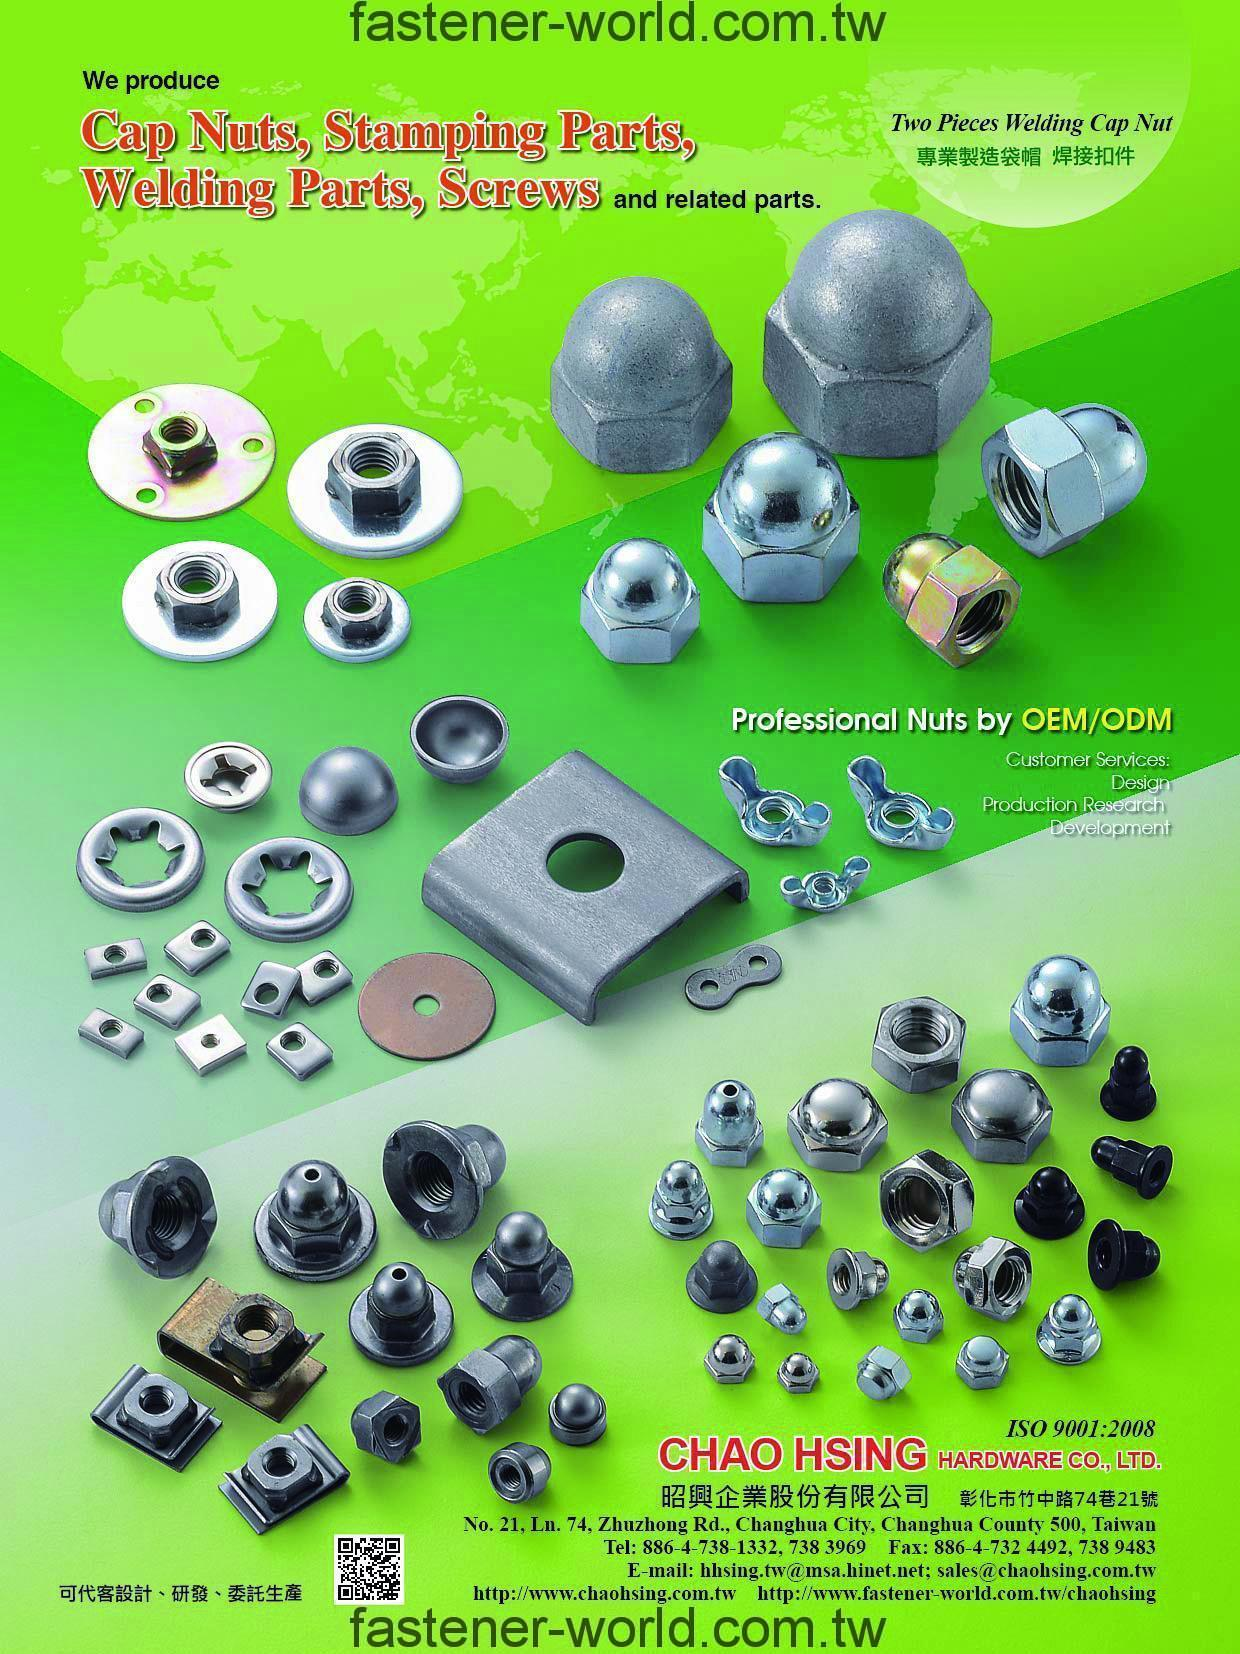 CHAO HSING HARDWARE CO., LTD.  Online Catalogues